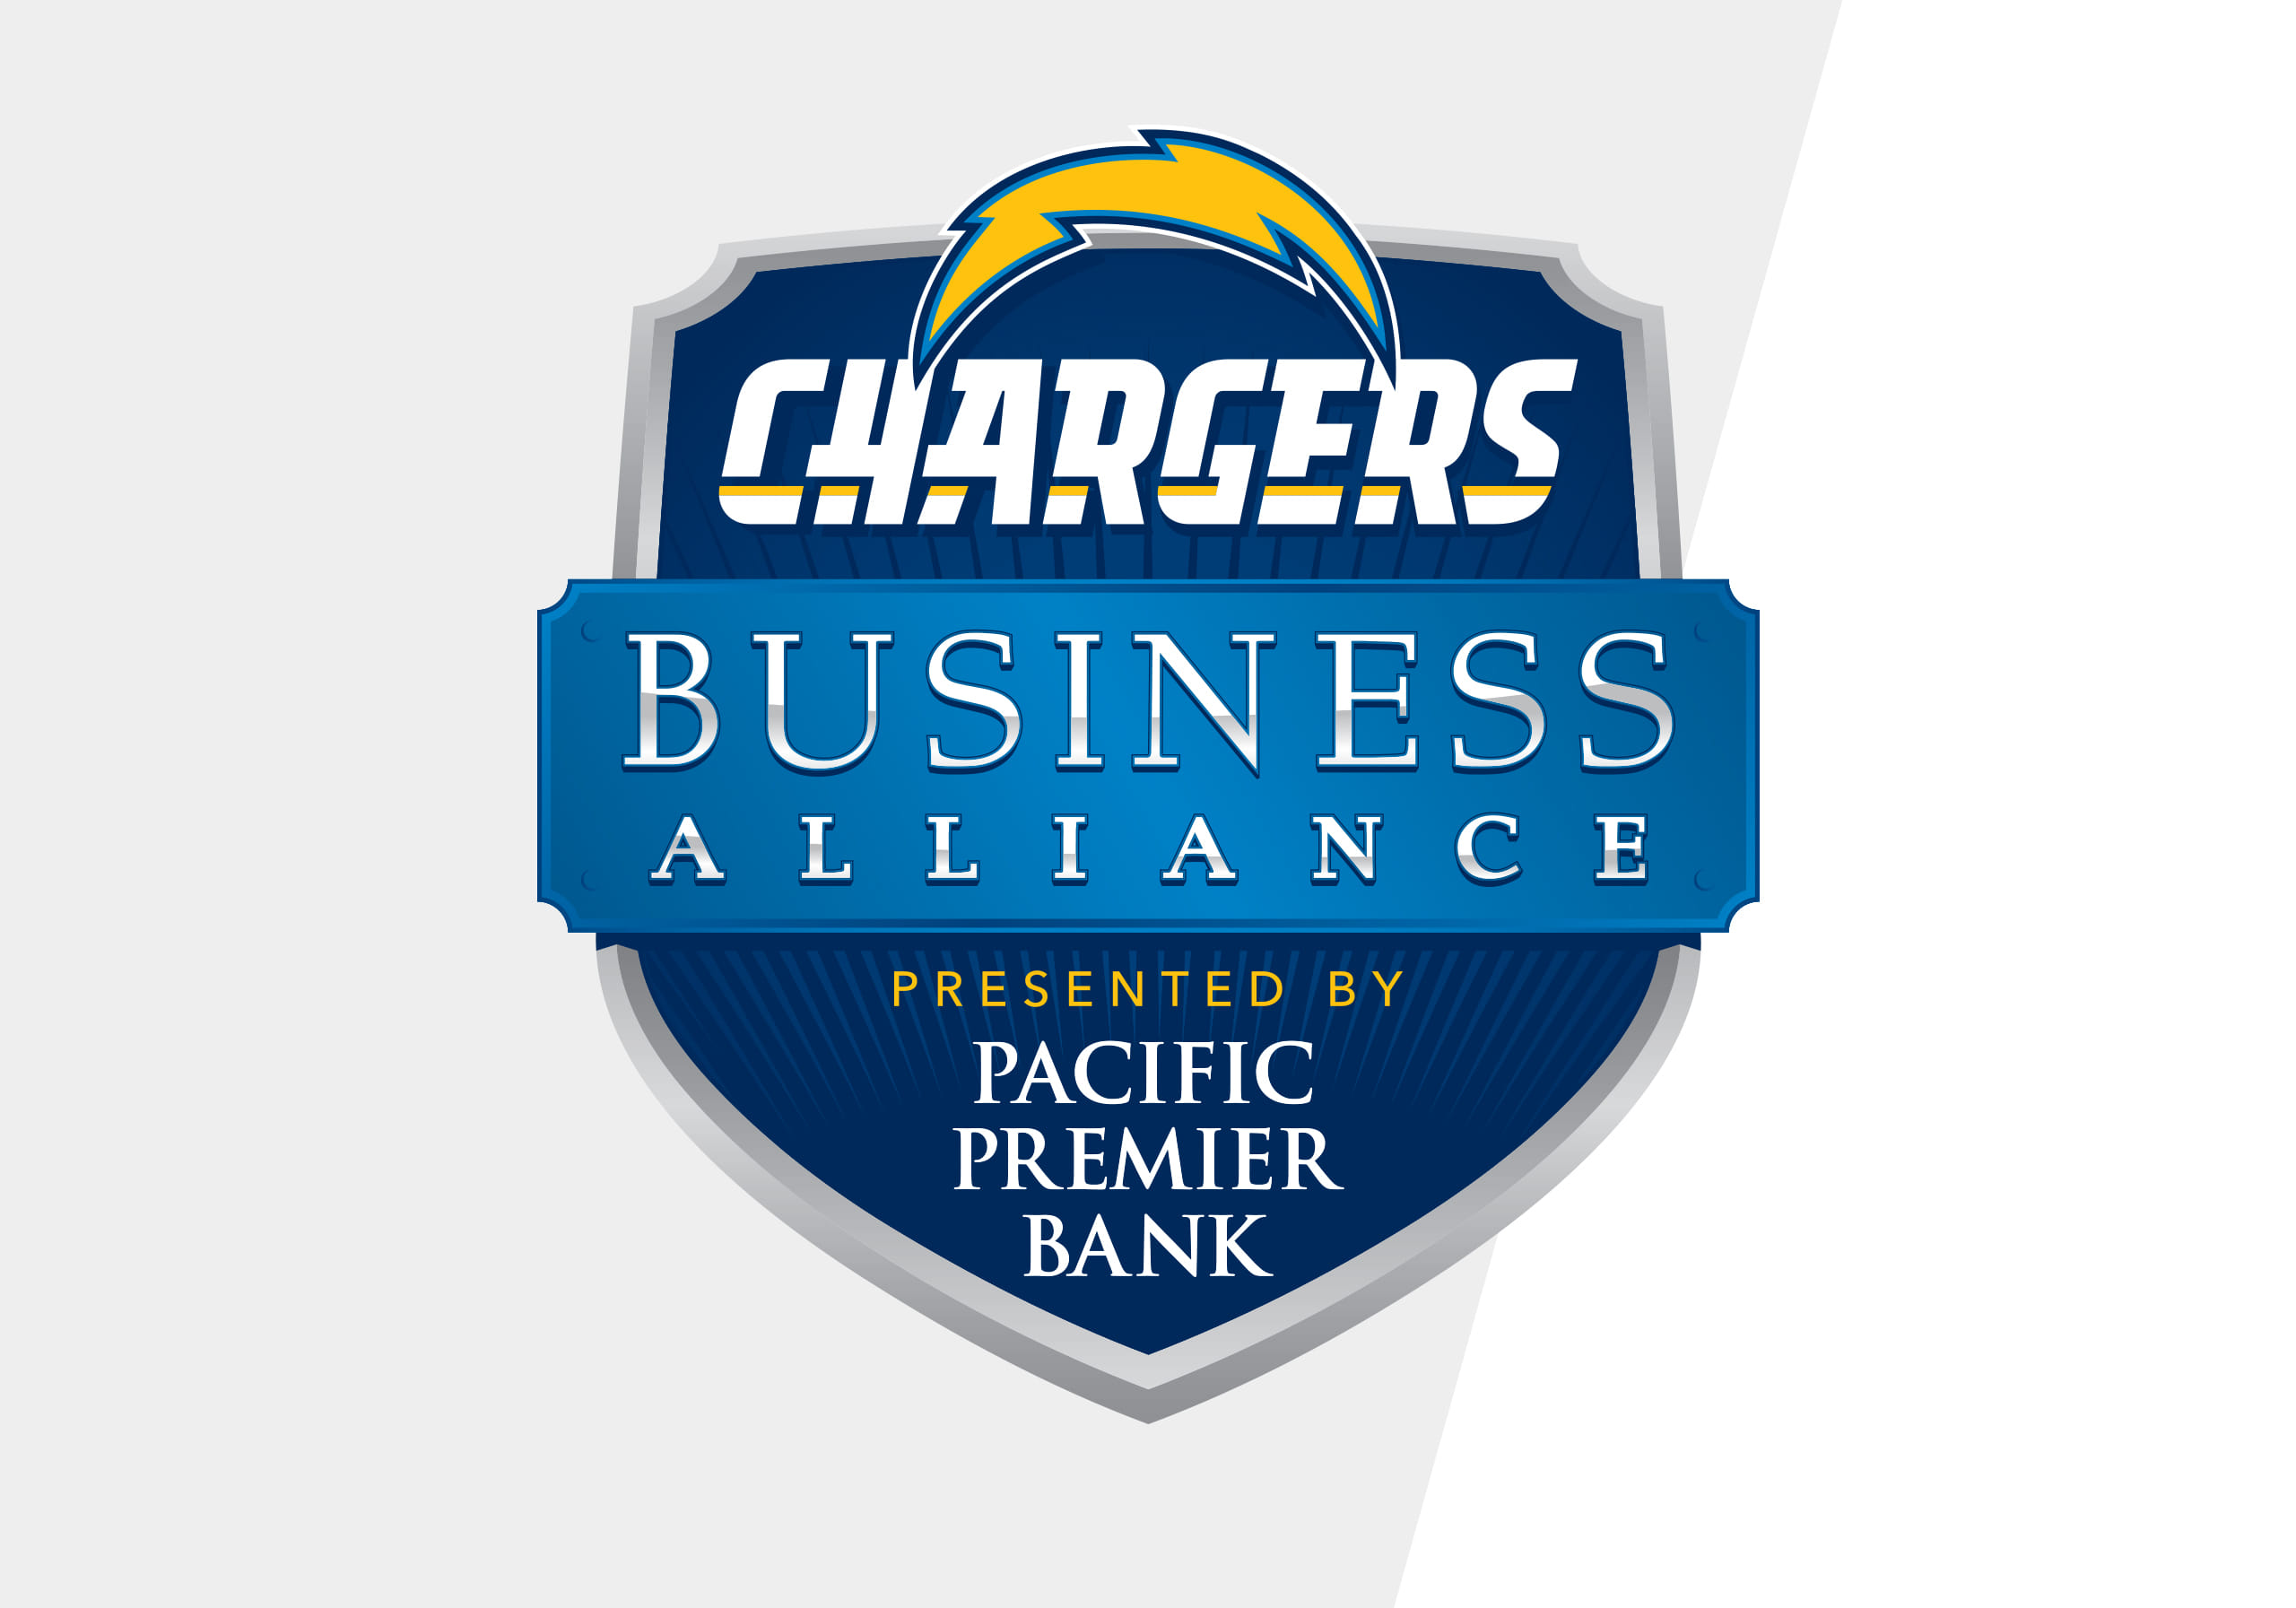 CHARGERS BUSINESS ALLIANCE